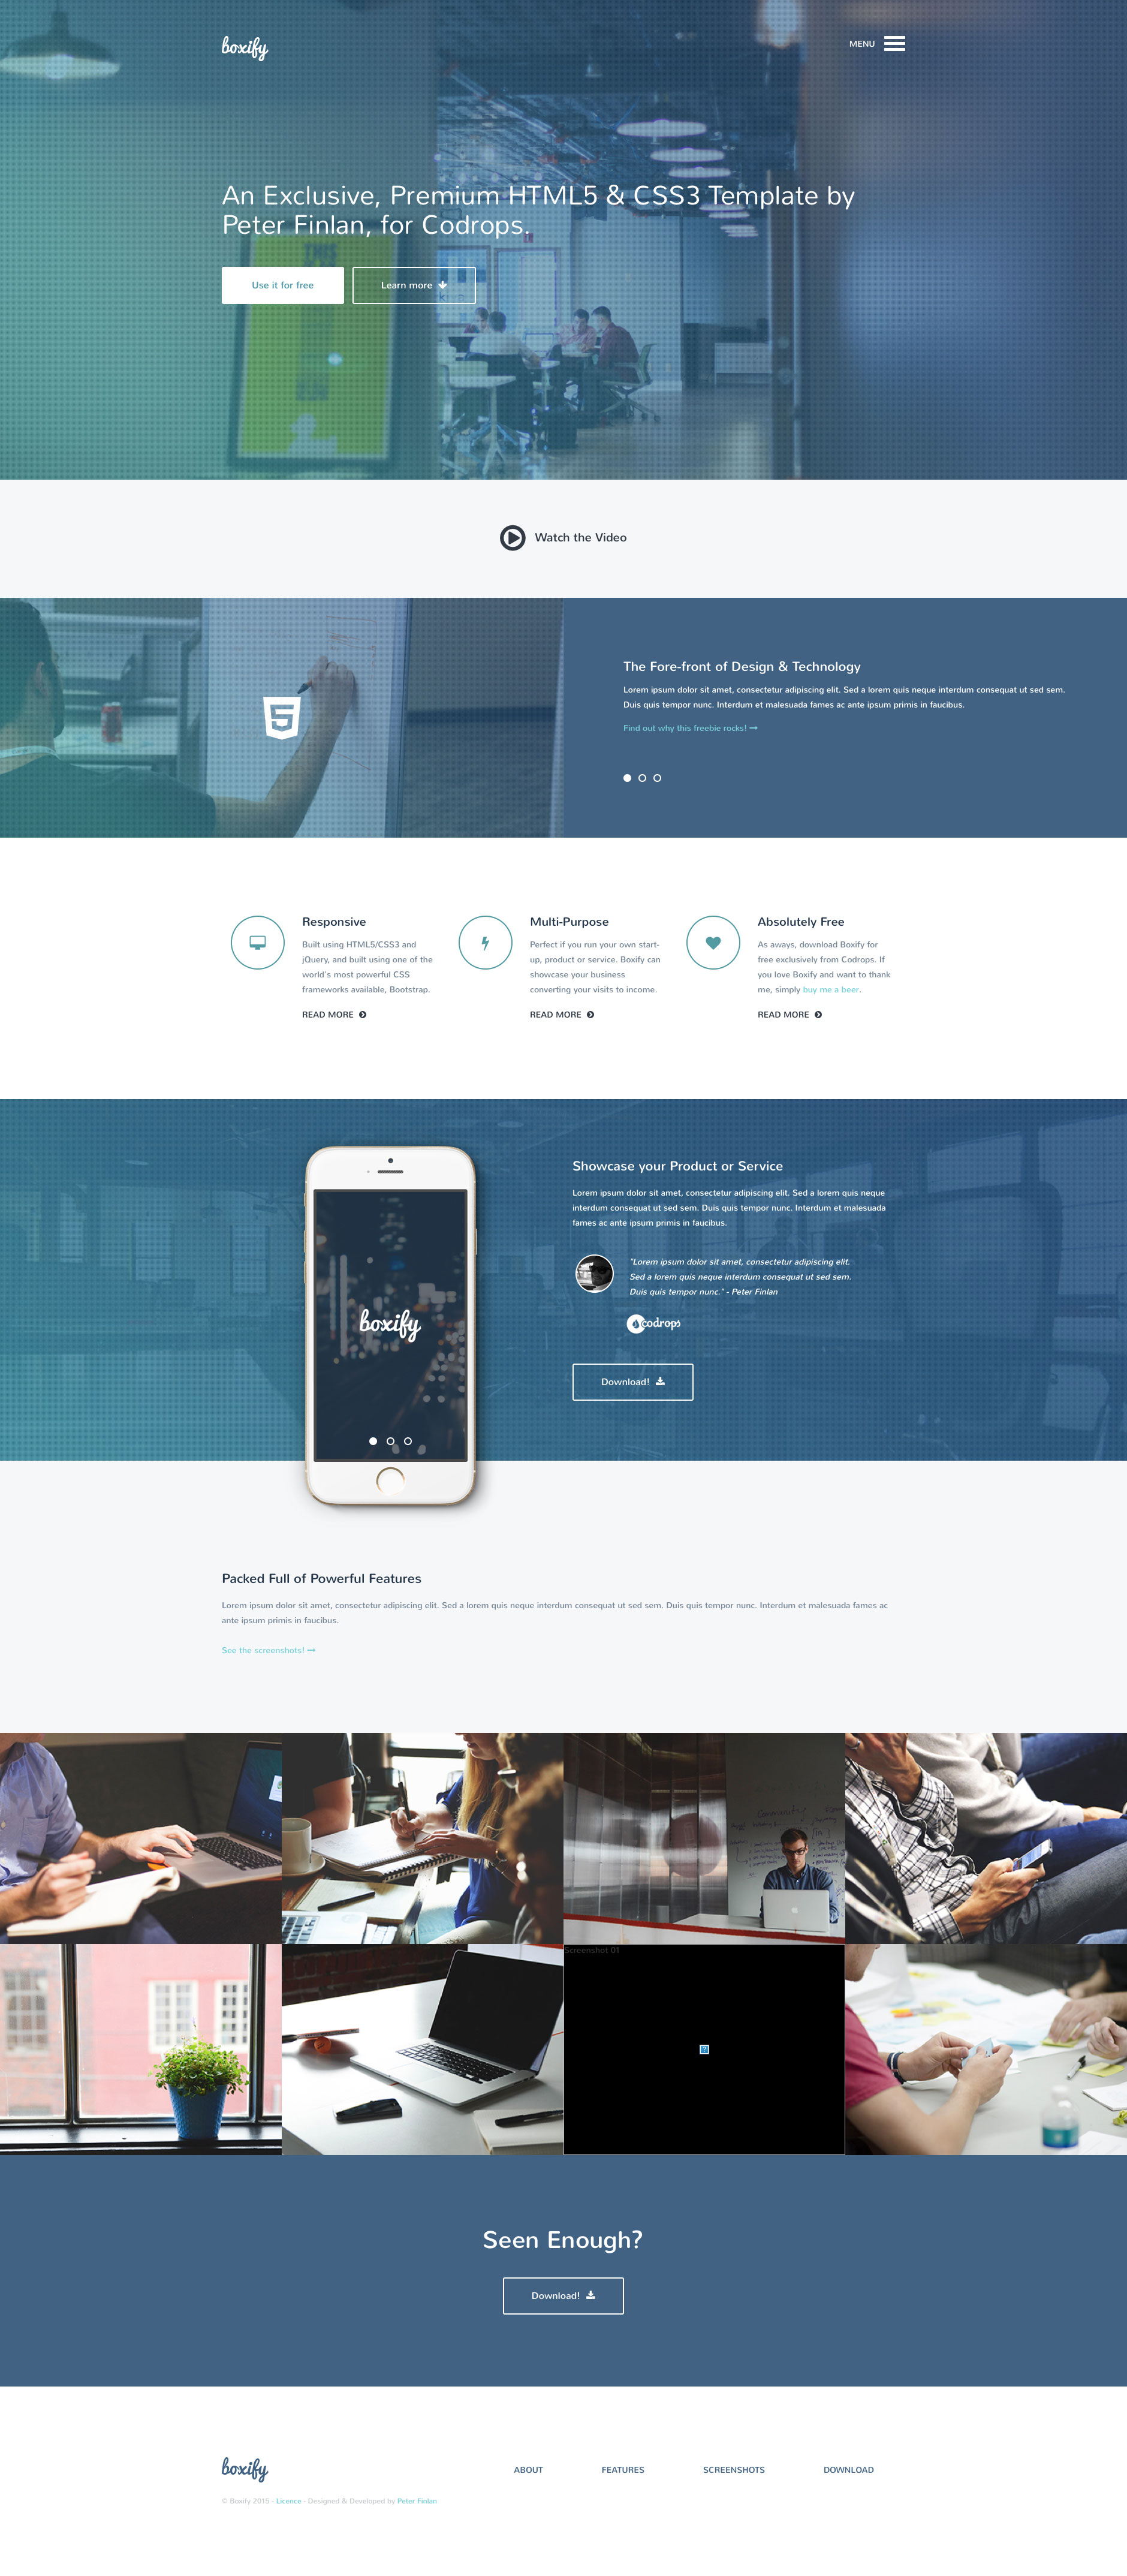 Boxify is a classic HTML5 one page business template that suits for personal as well as portfolio websites. Features include Flickity, Font Awesome icons, fancyBox, Animate.css and many others. The template is fully responsive and based on Bootstrap framework.